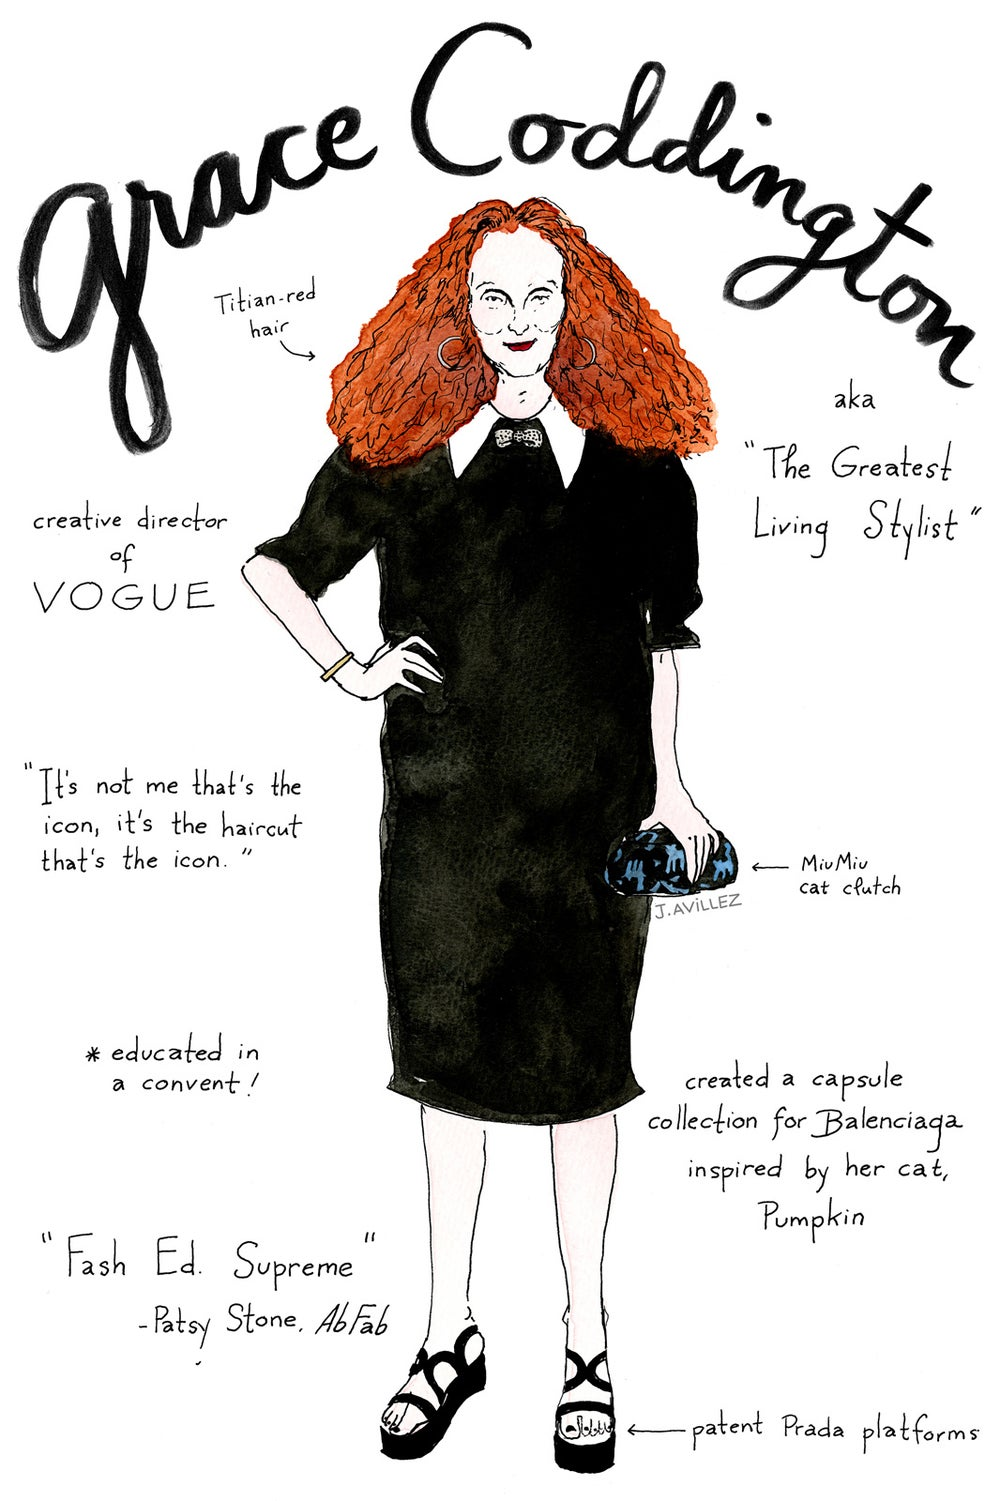 Grace Coddington — creative director